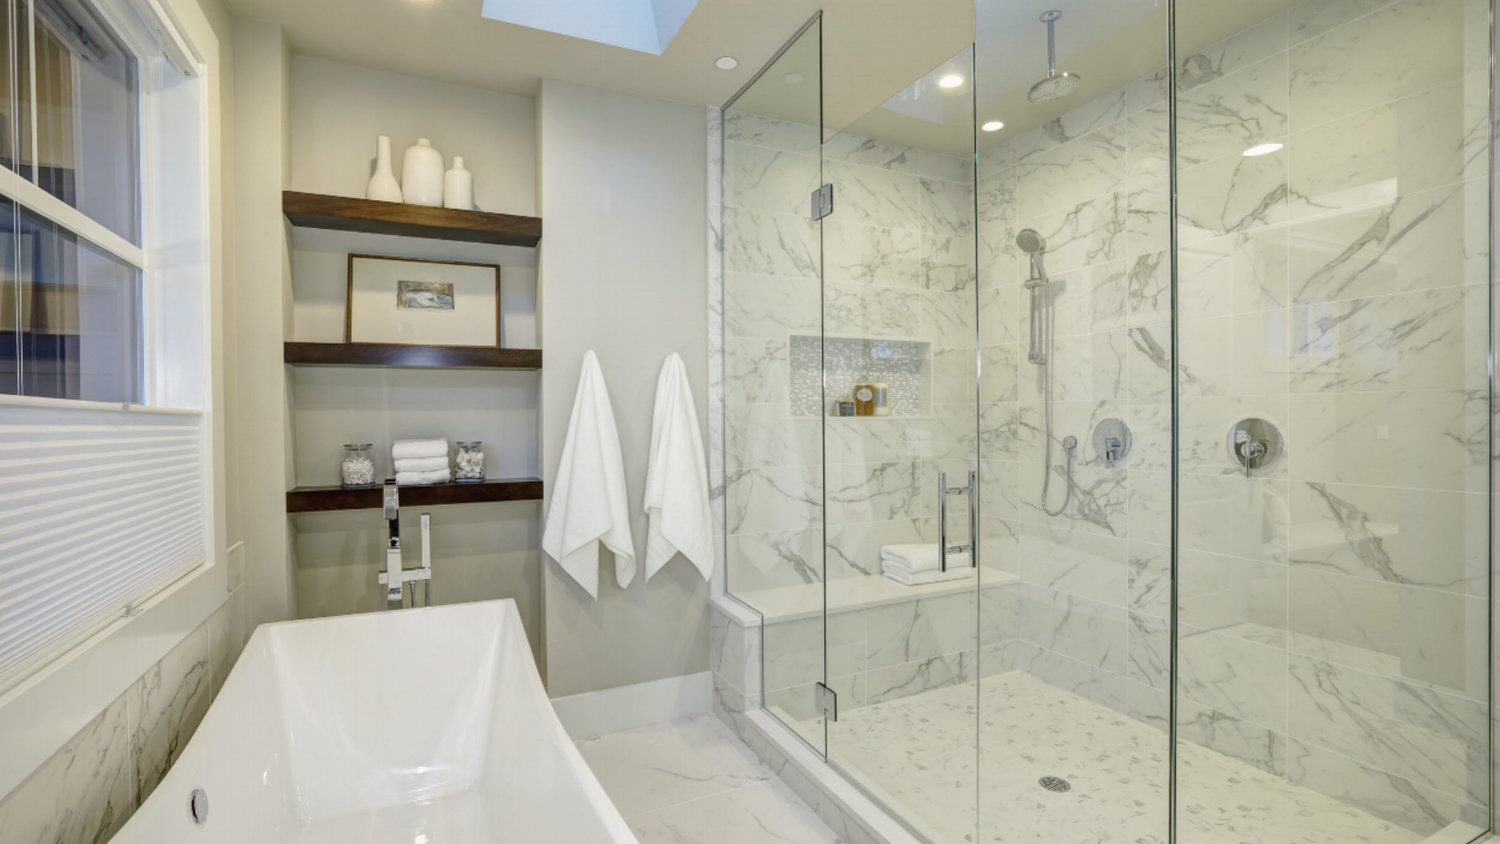 Services Lexington KY Remodeling Company Specializing In Bathroom - Bathroom remodel lexington ky